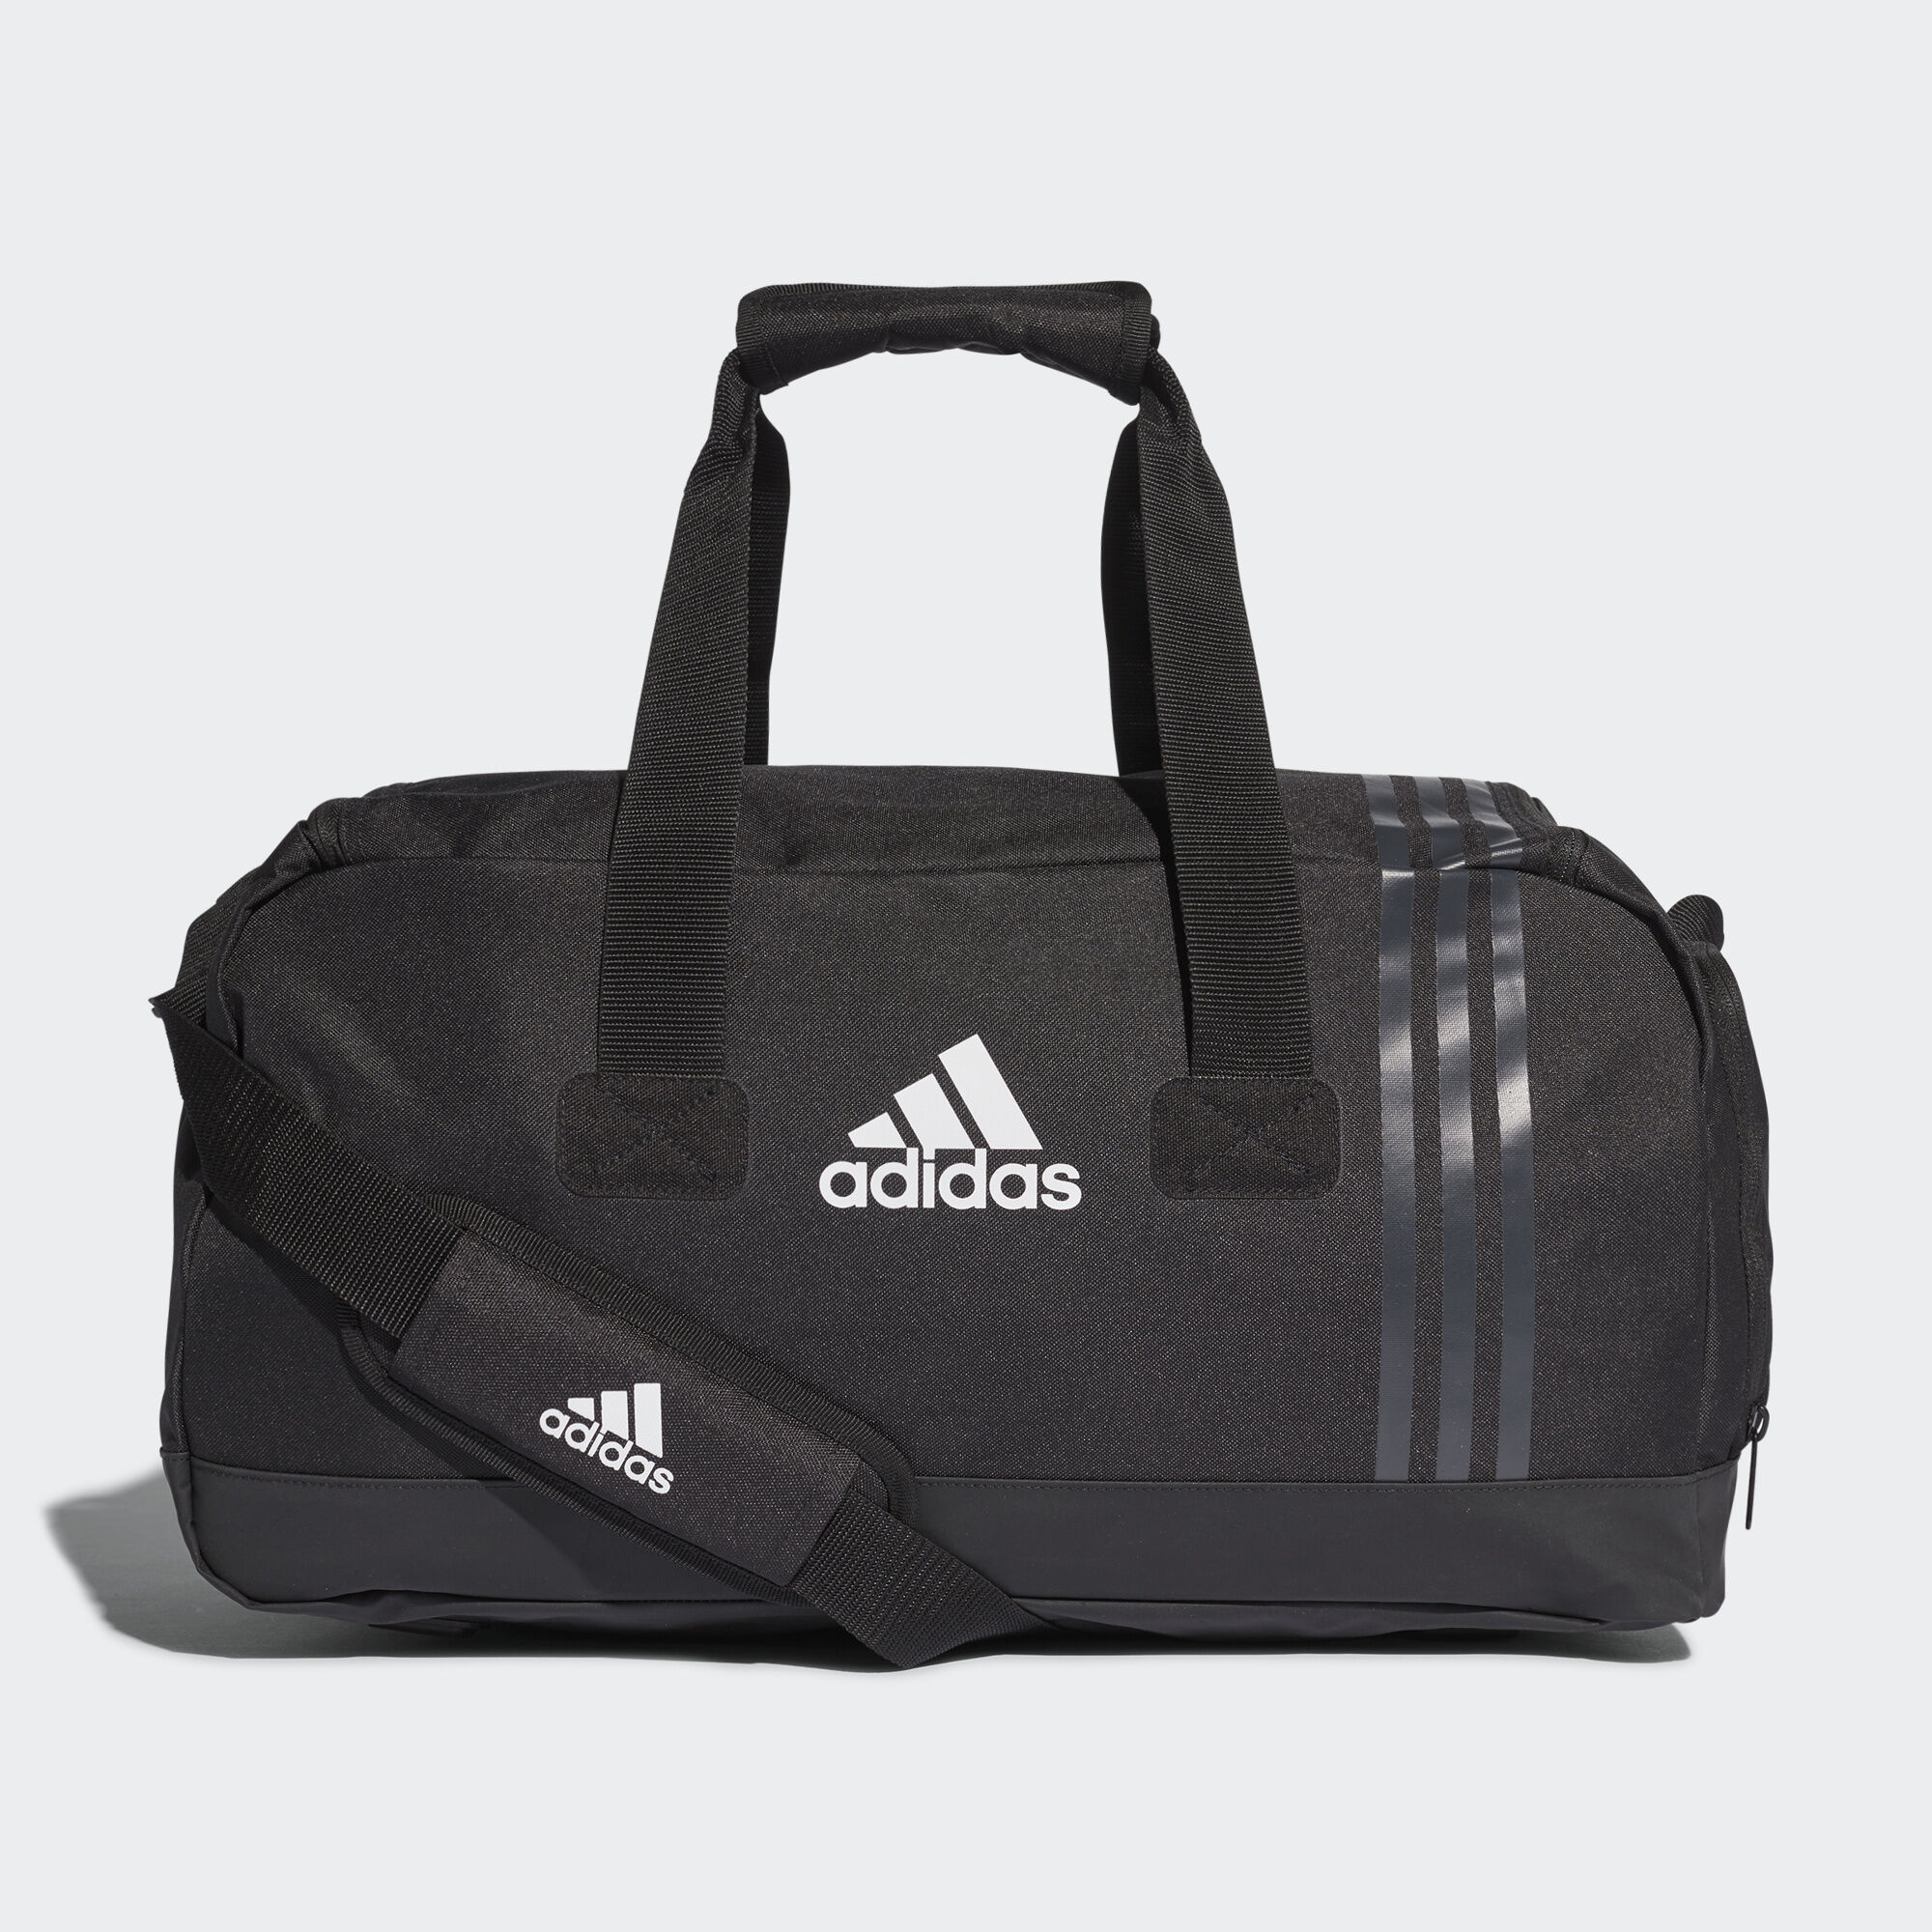 adidas mens mini bag